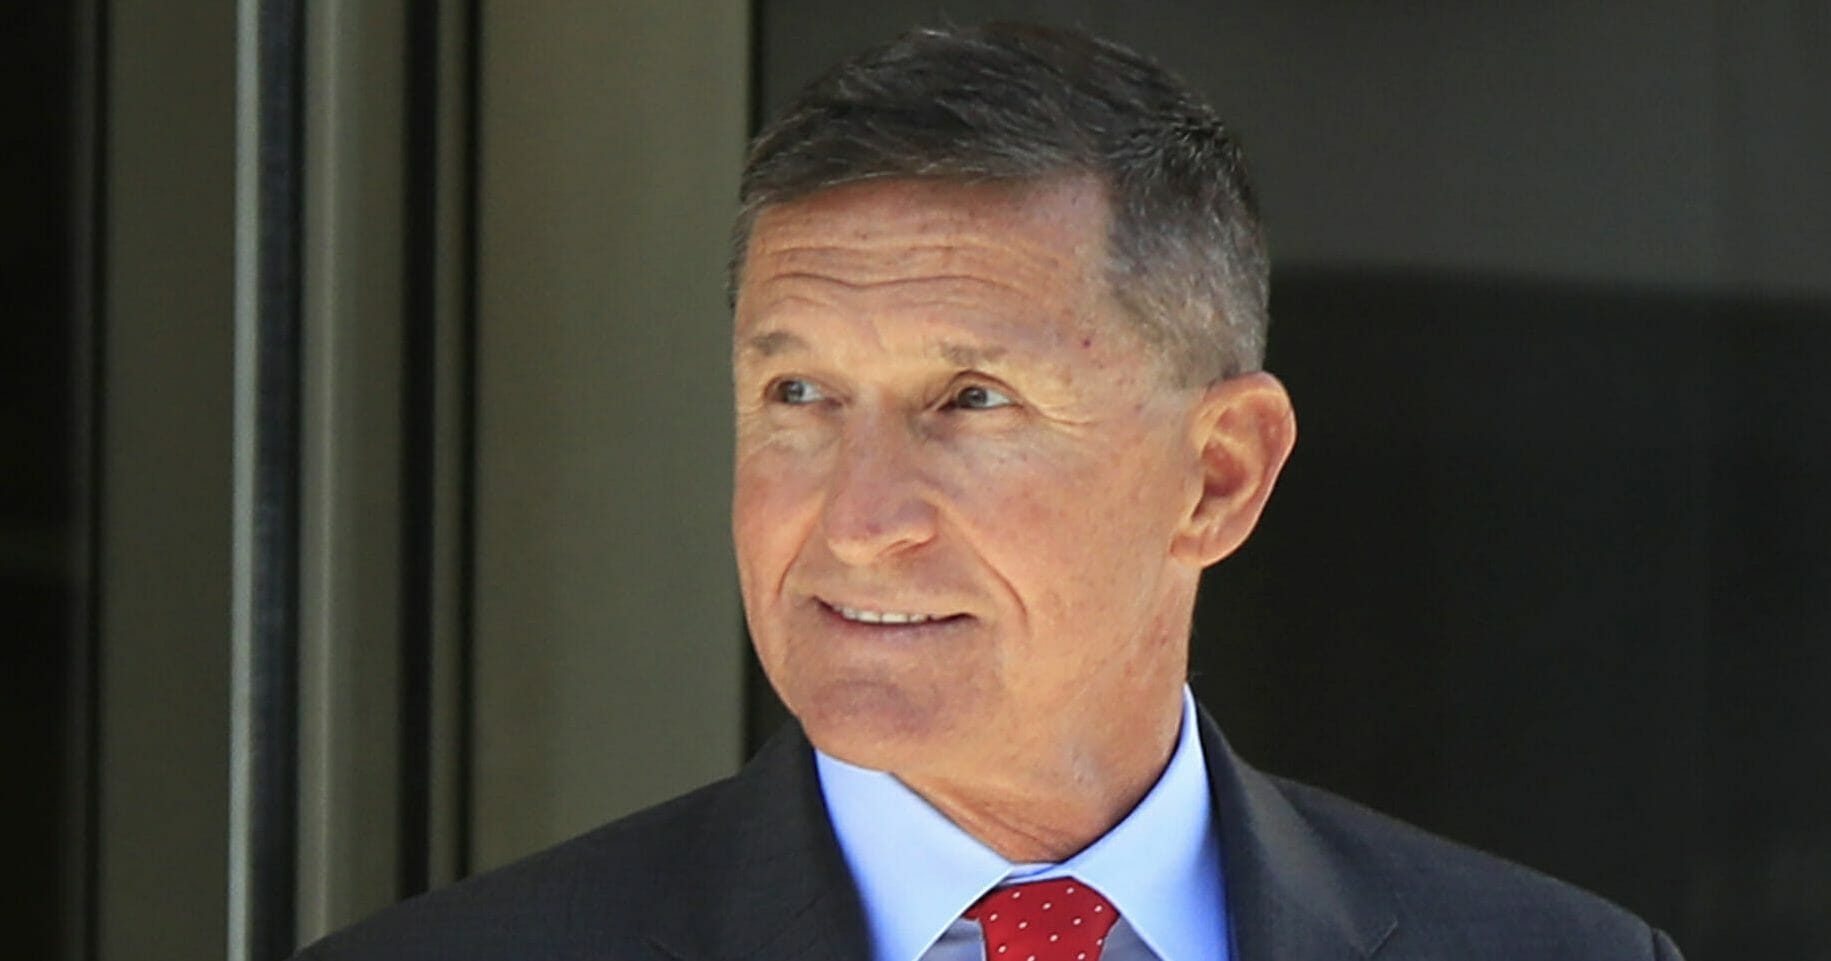 Former Trump administration National Security Adviser Michael Flynn leaves the federal courthouse in Washington July 10, 2018, following a status hearing.